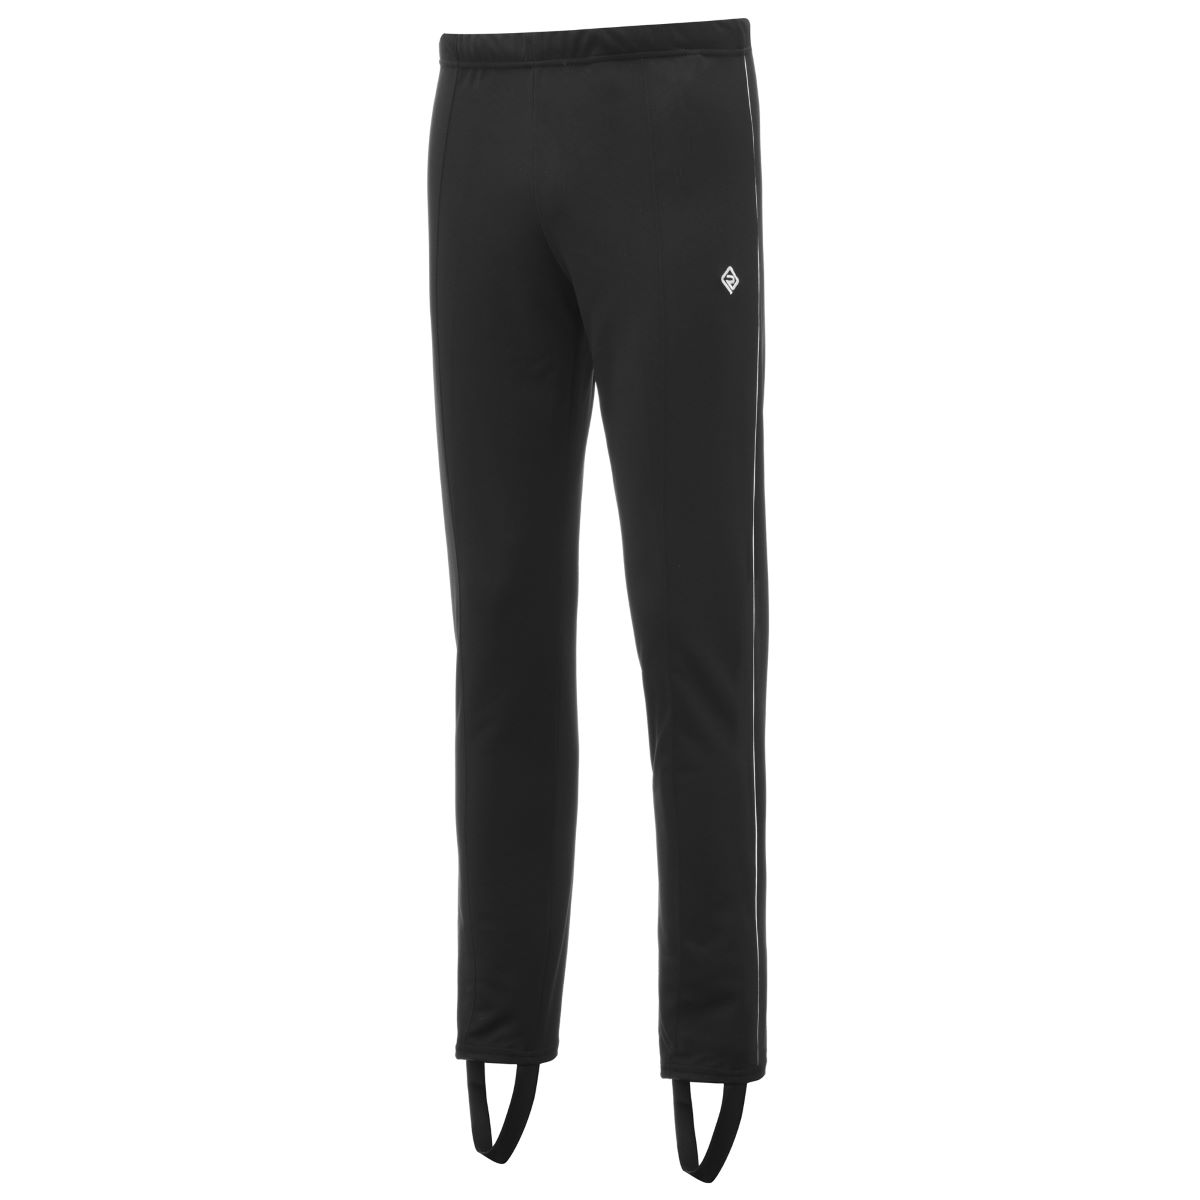 Image of Collant de course Ronhill Classic - S Noir/Blanc | Joggings